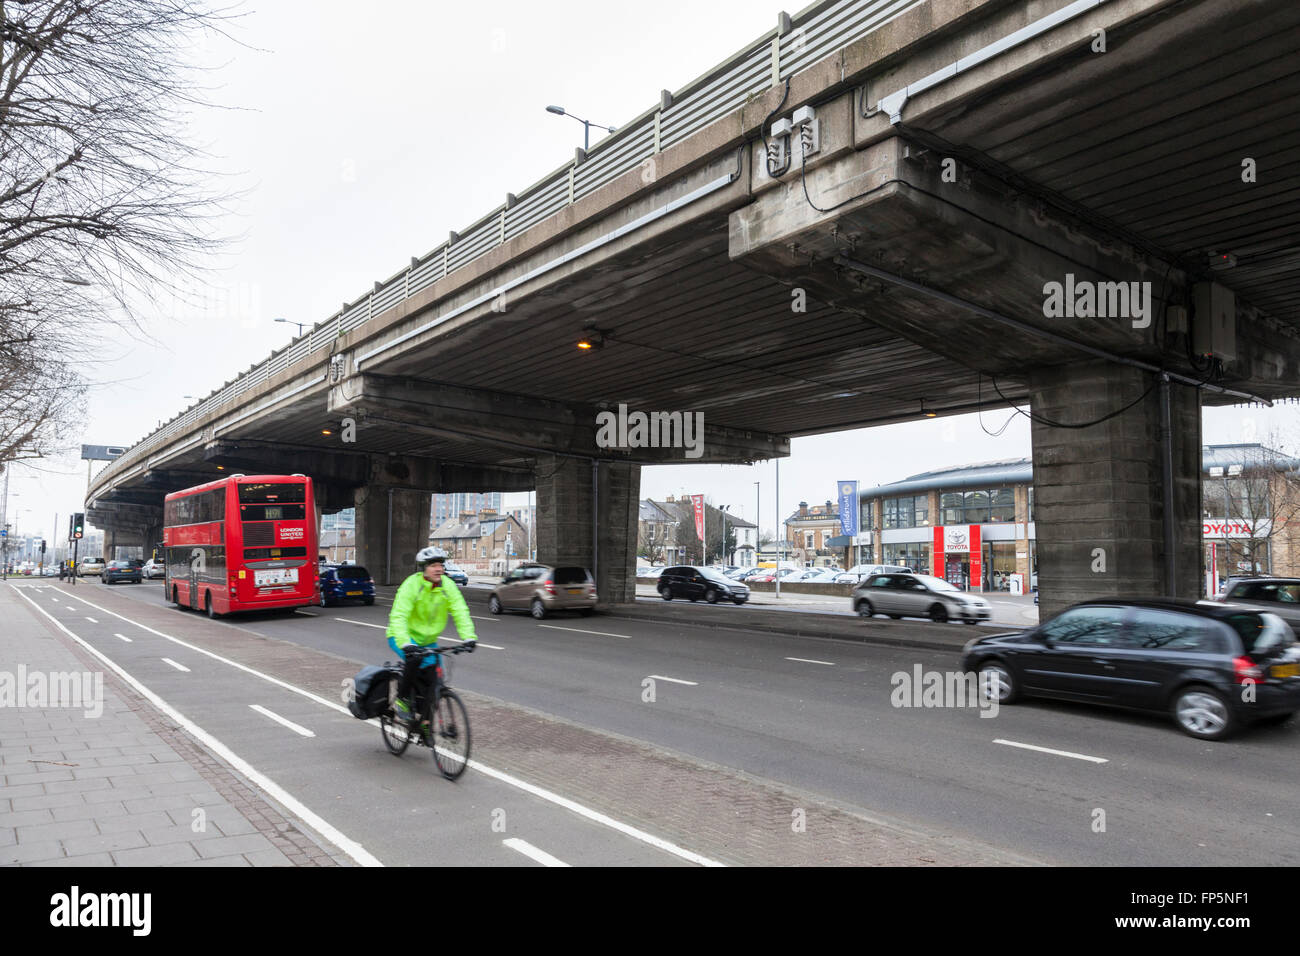 A section of elevated M4 motorway above the A4 road at Brentford, London, England, UK - Stock Image